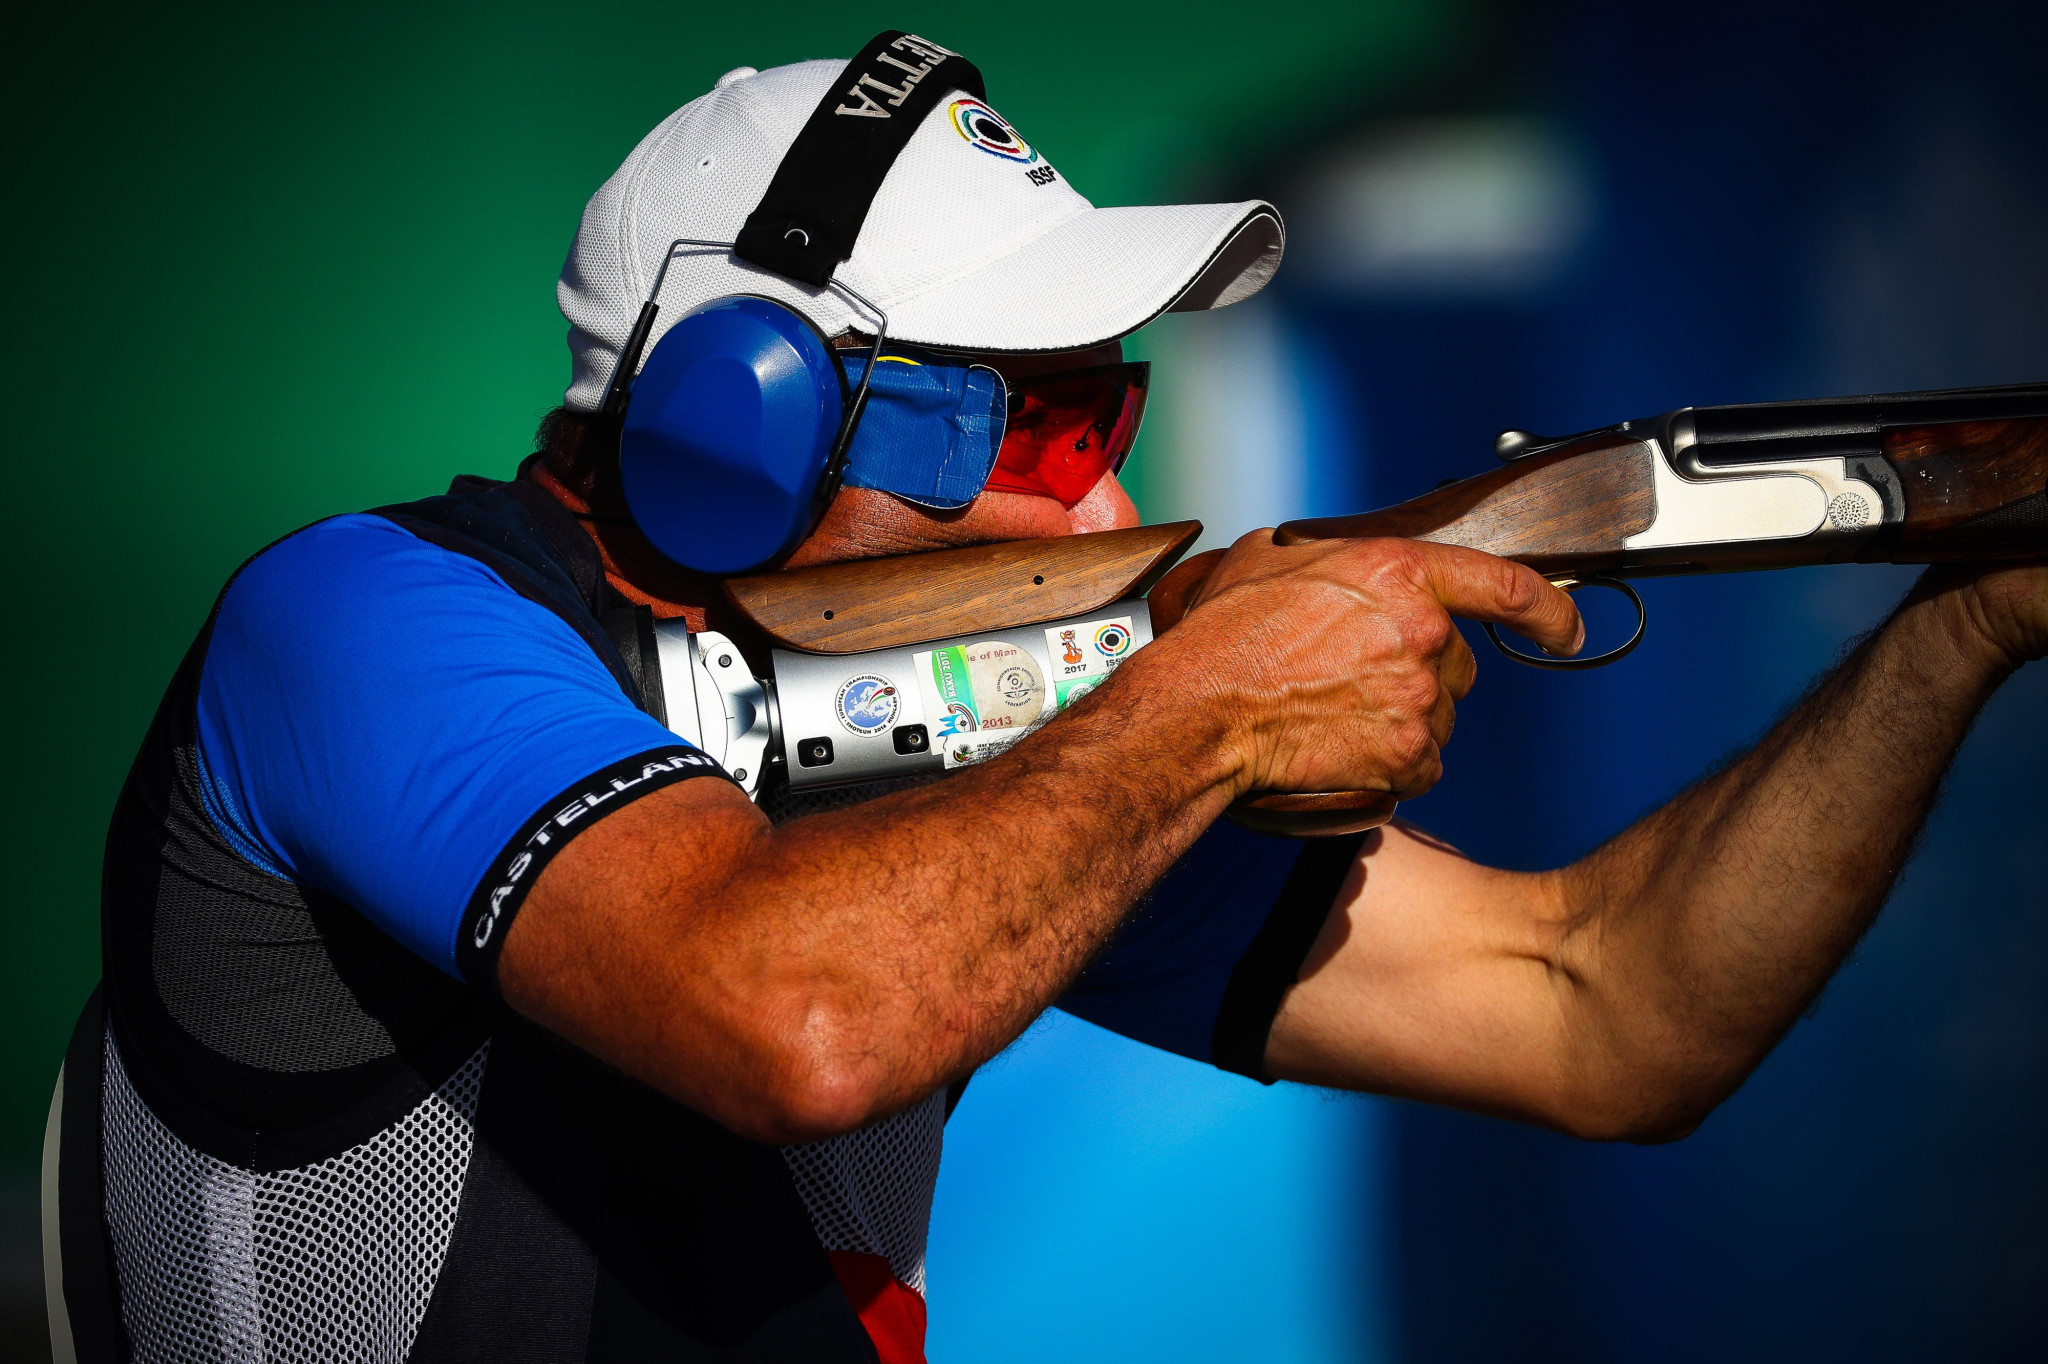 Shooting was not included as part of the Birmingham 2022 sports programme ©Getty Images